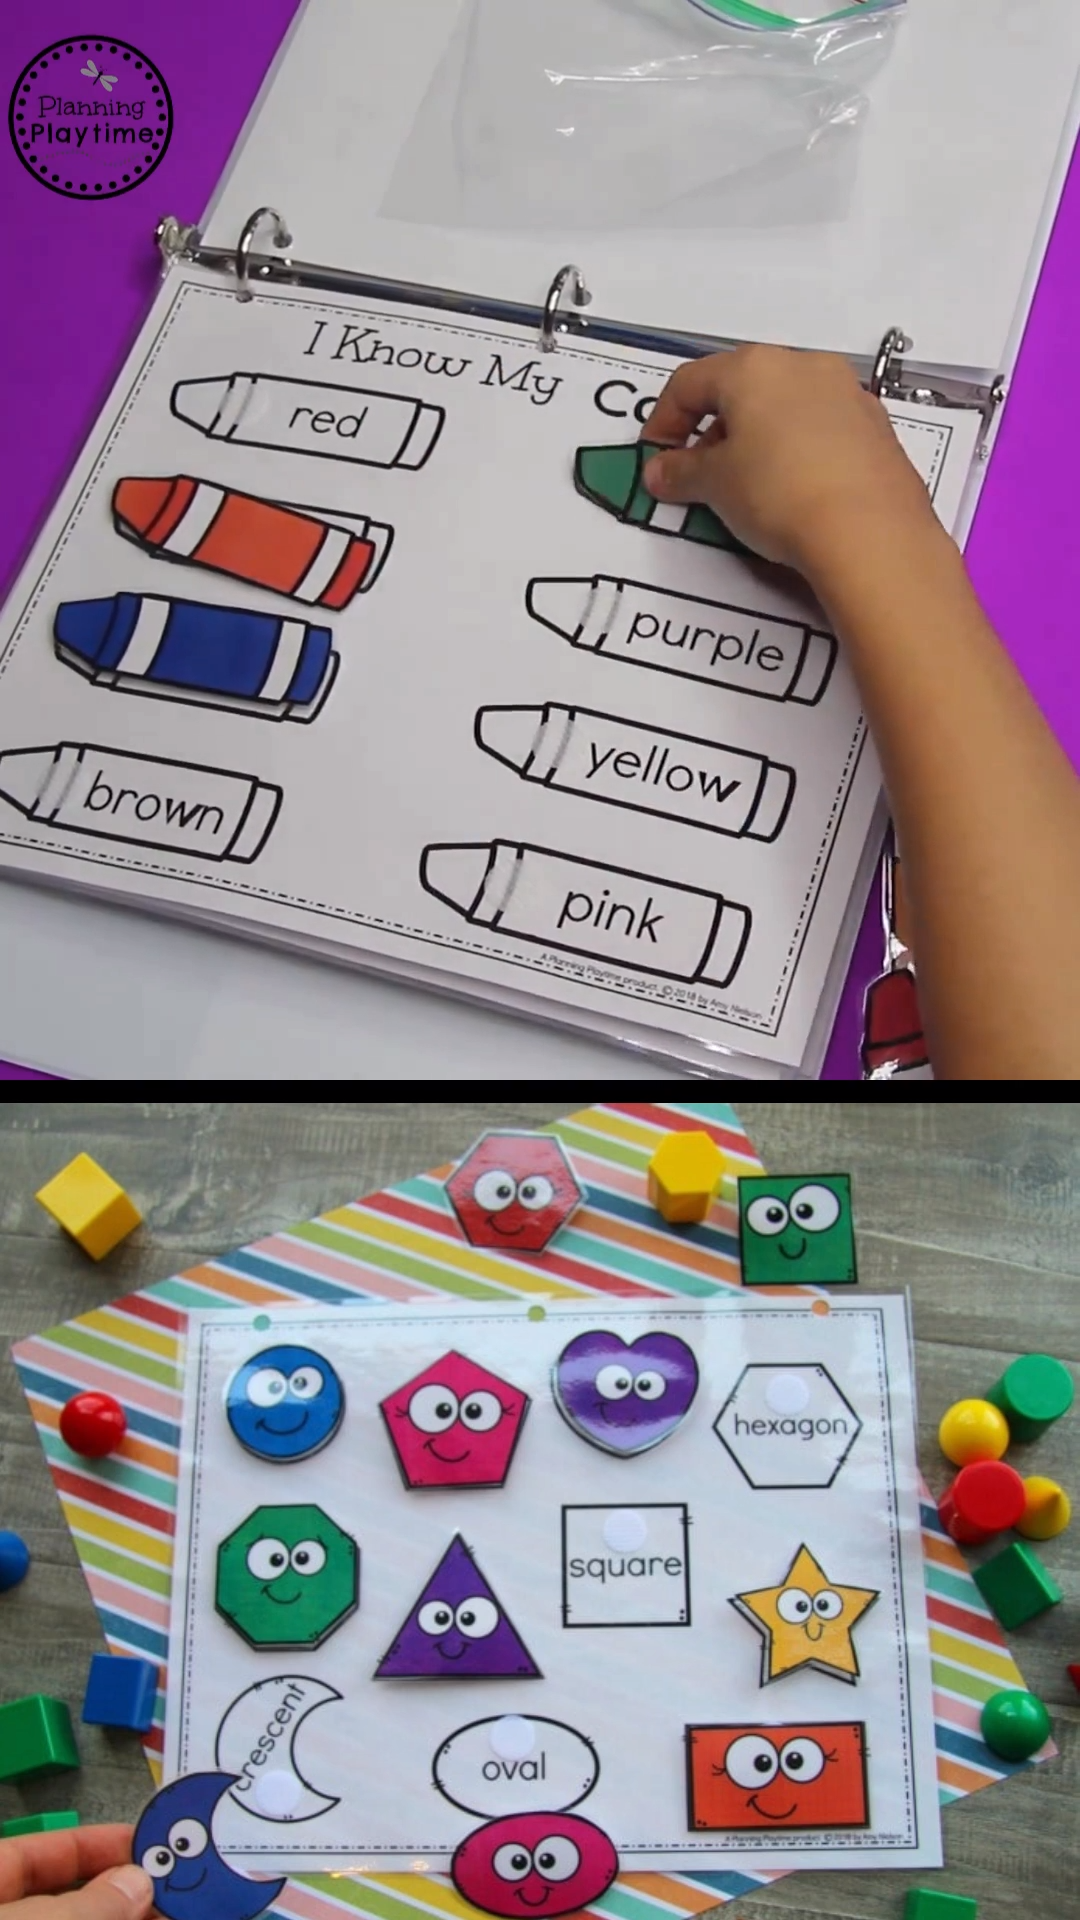 Back to School Activity Binder (Preschool)- fun busy bag ideas for toddlers and preschoolers! Download the PDFs to make a interactive